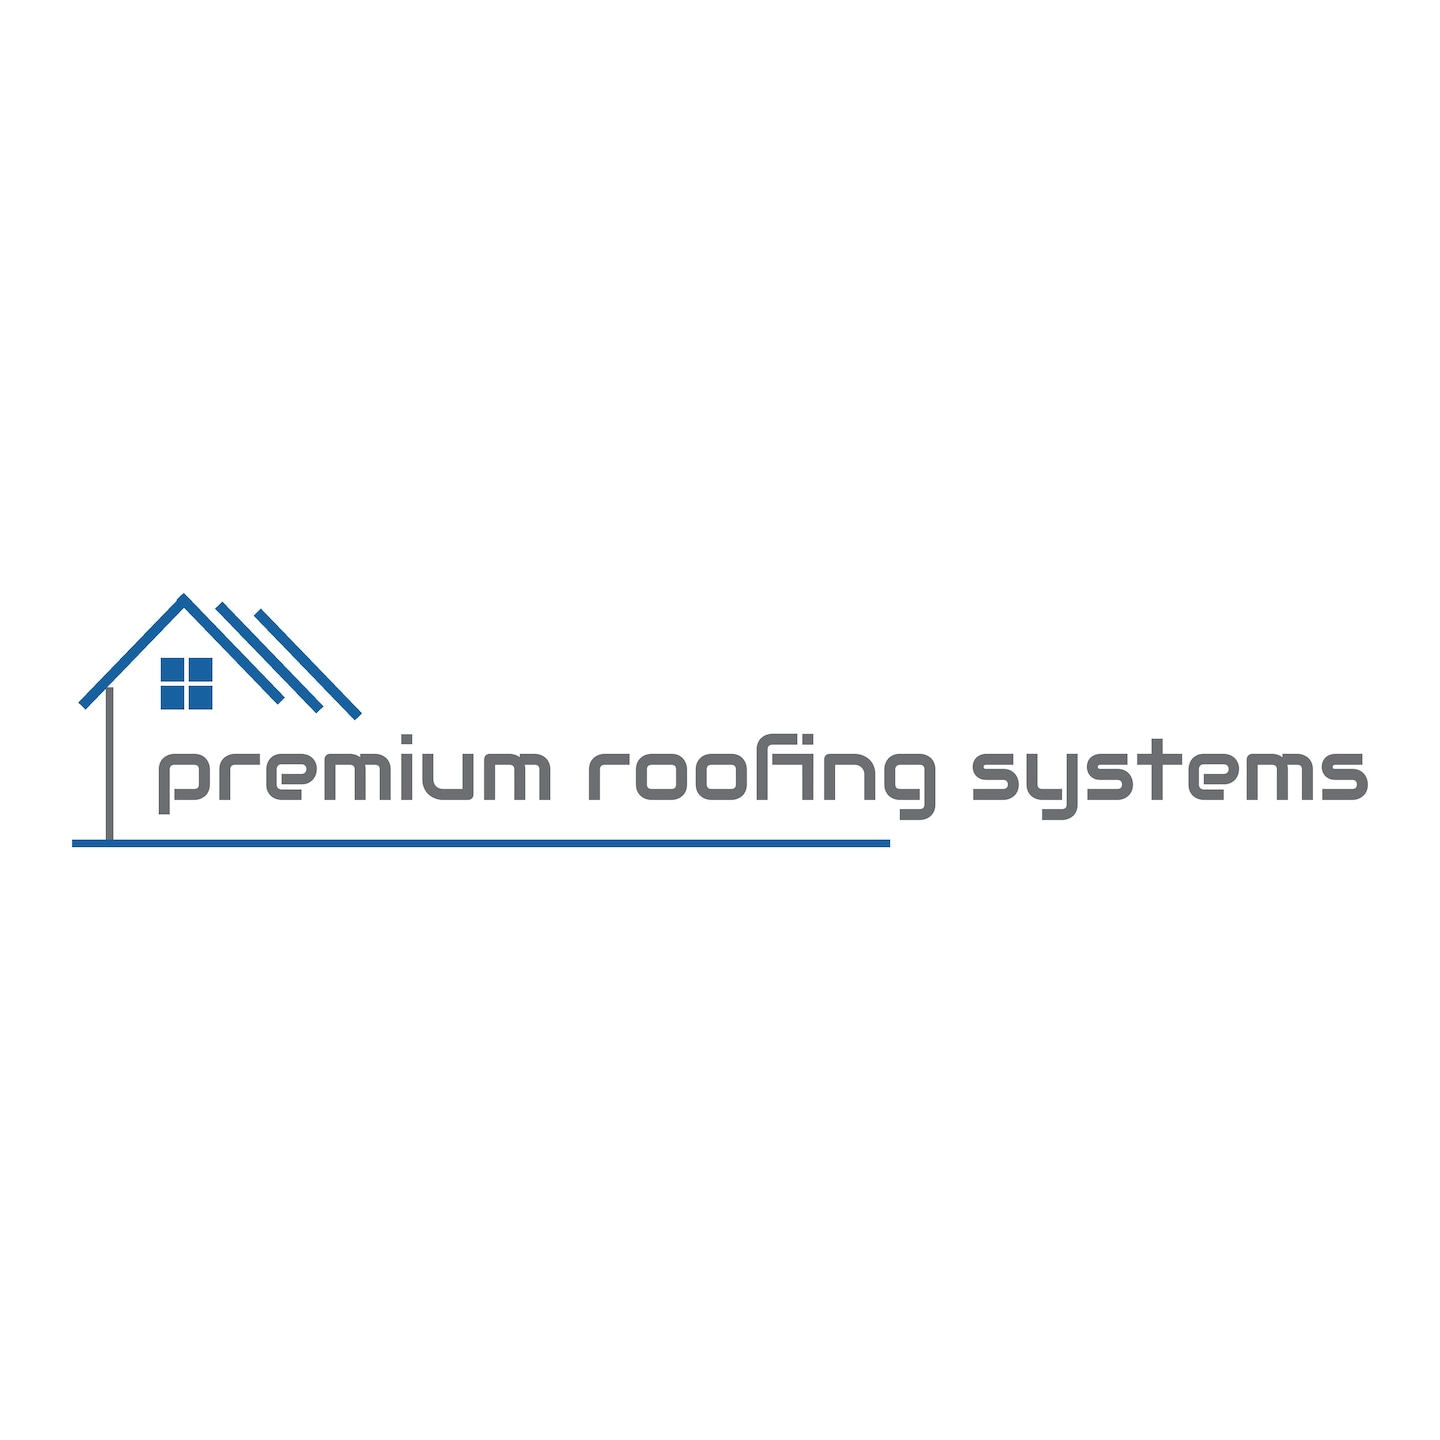 premium roofing systems reviews costa mesa ca angie s list premium roofing systems reviews costa